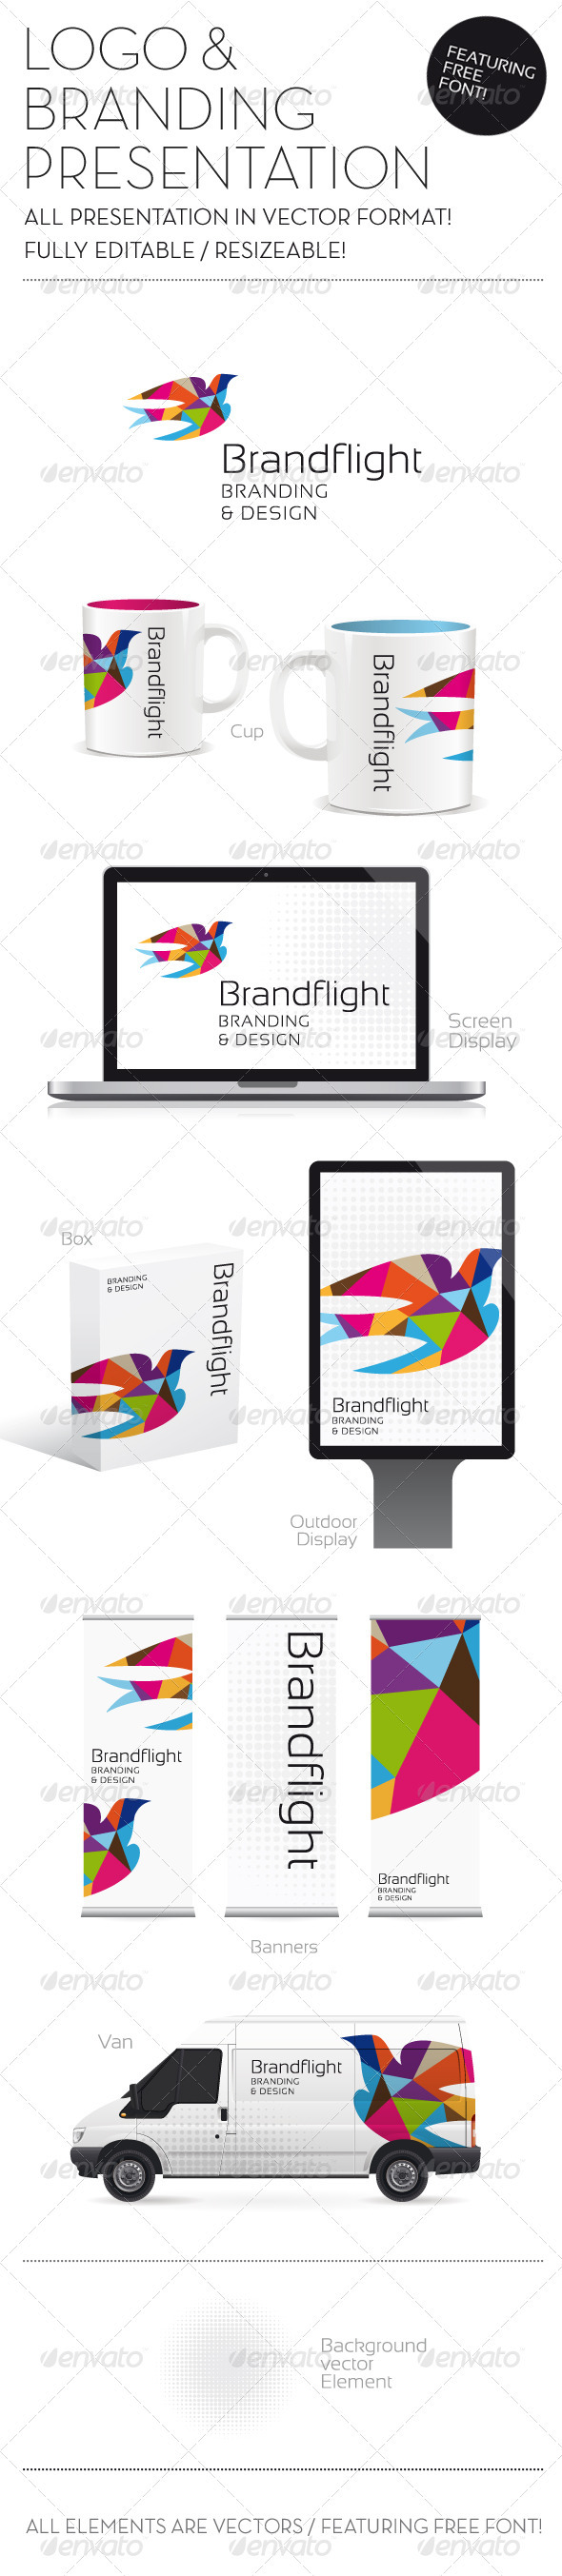 Logo Template Branding Presentation Including Banners Screen Display And More Featuring Free Font All In Vector Ai Eps Pdf Format